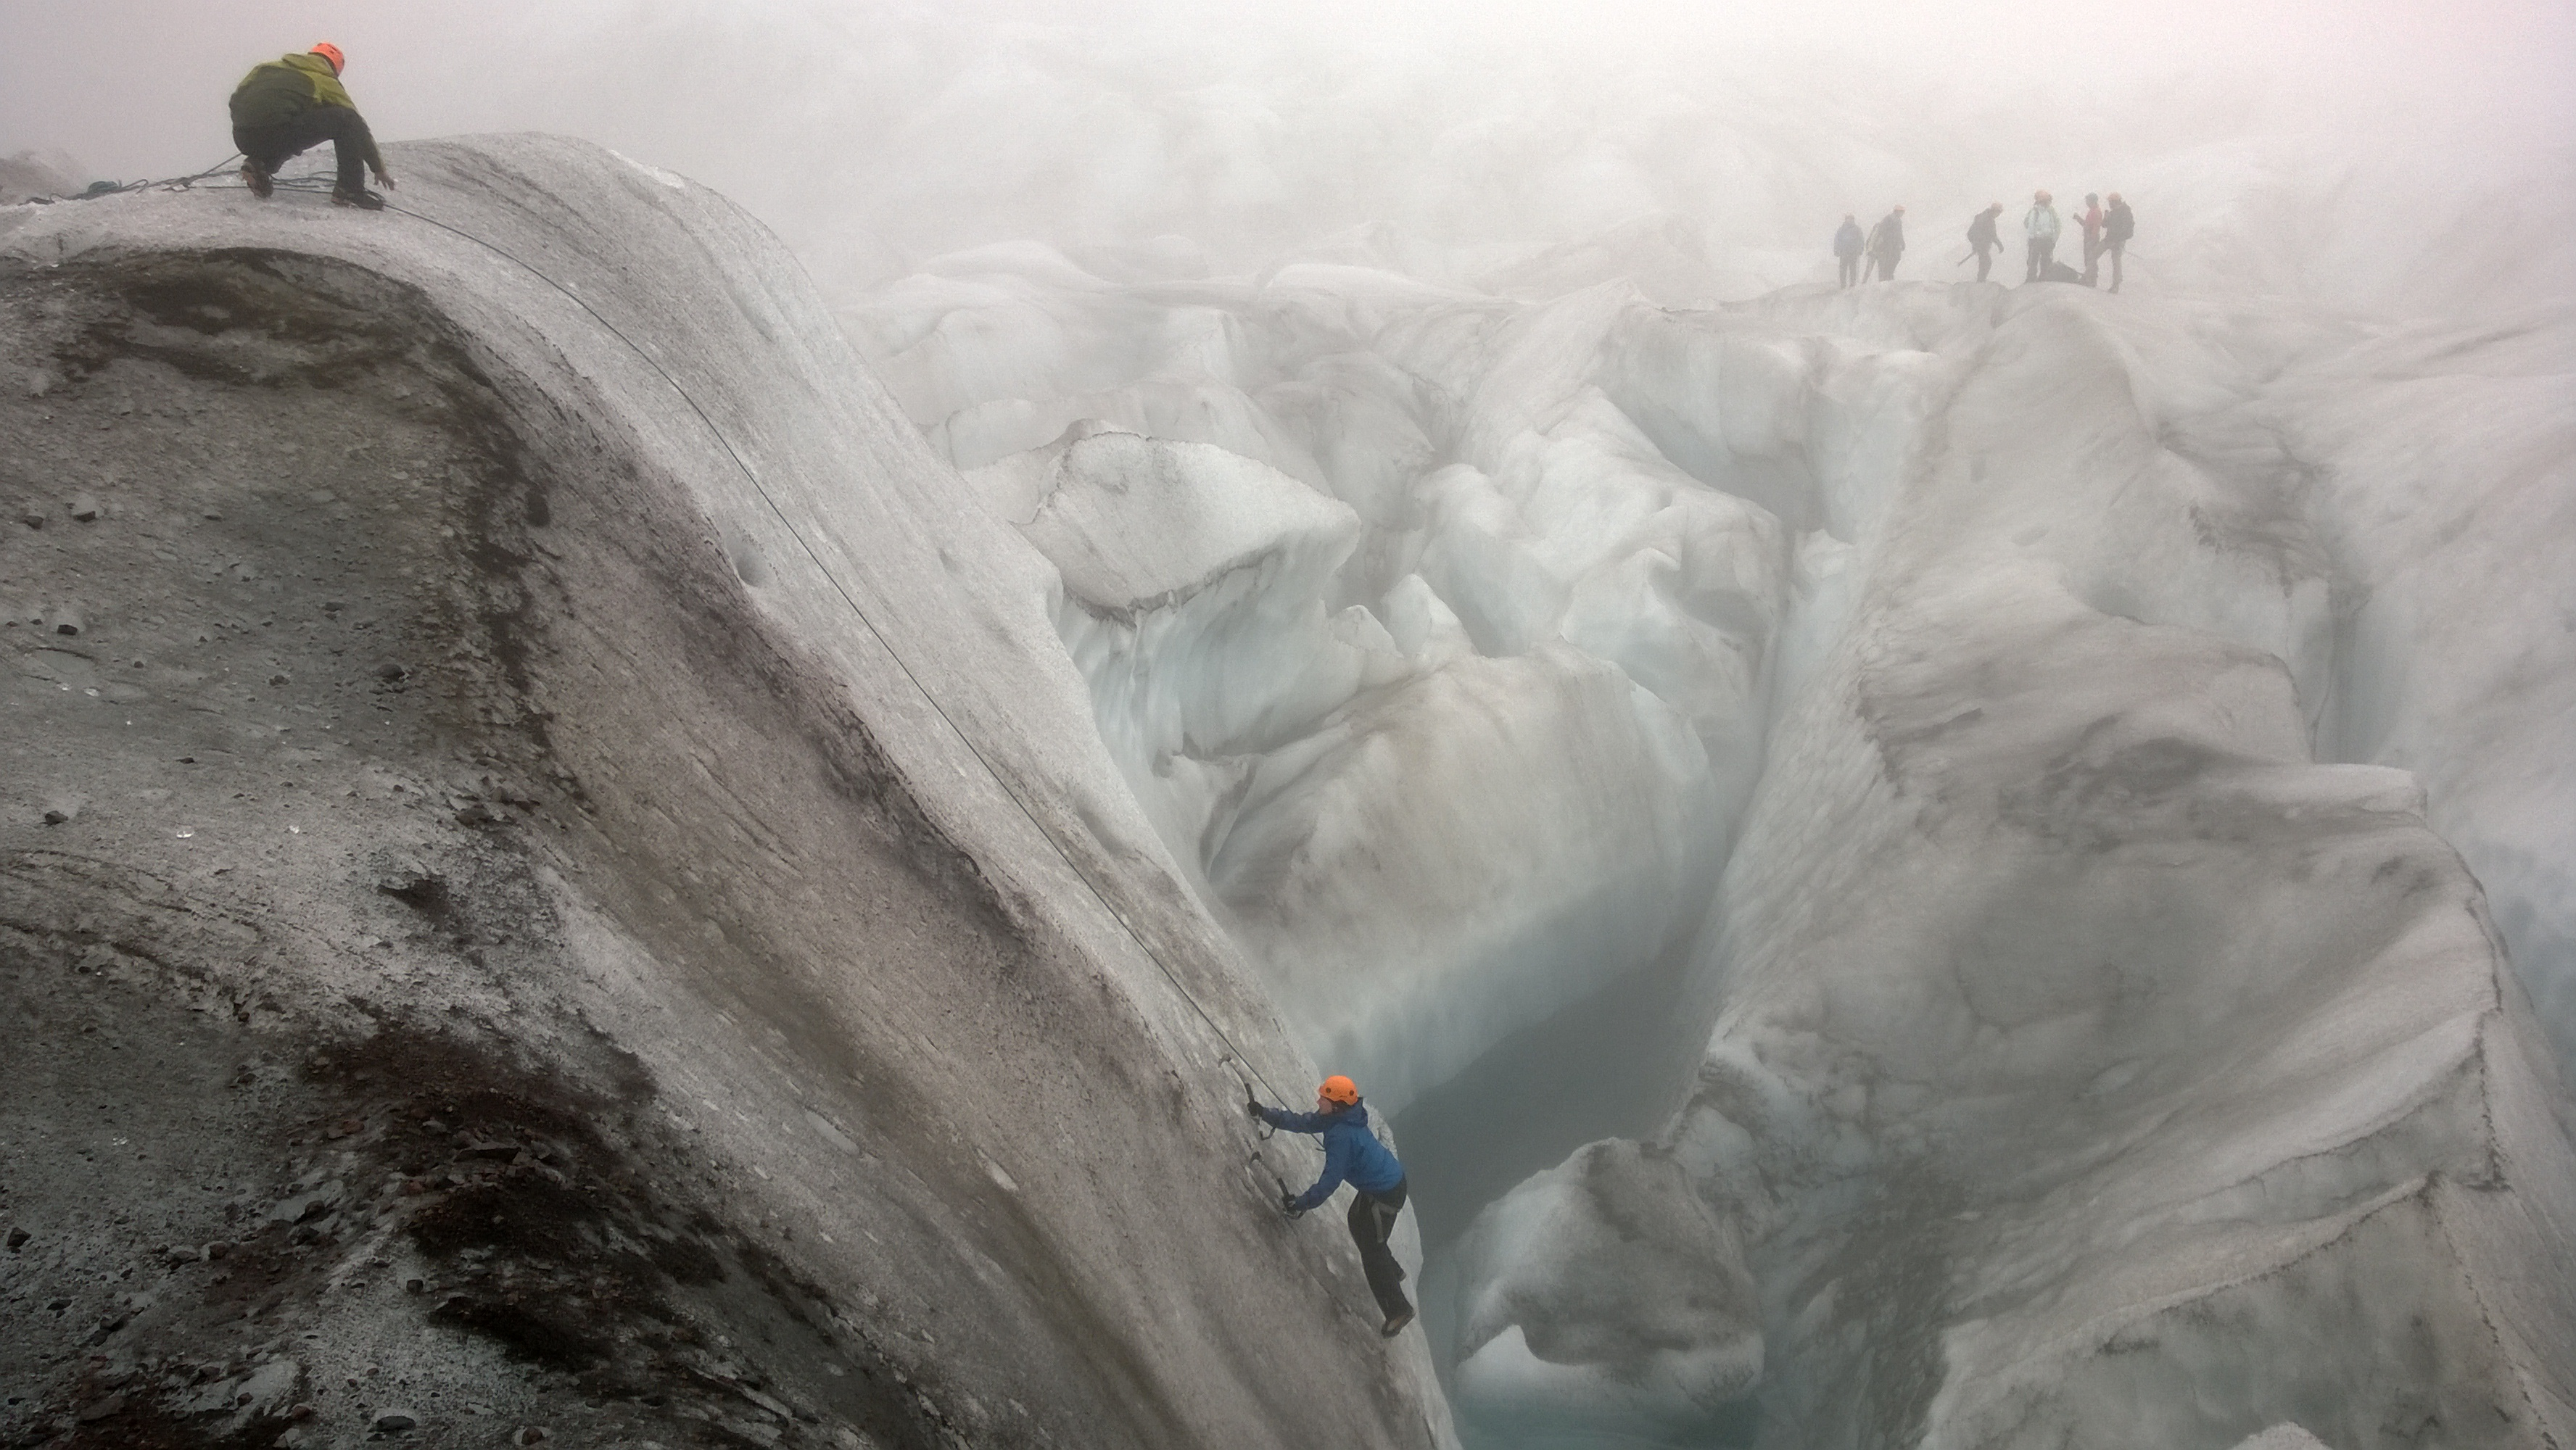 Climbing out of a crevasse.